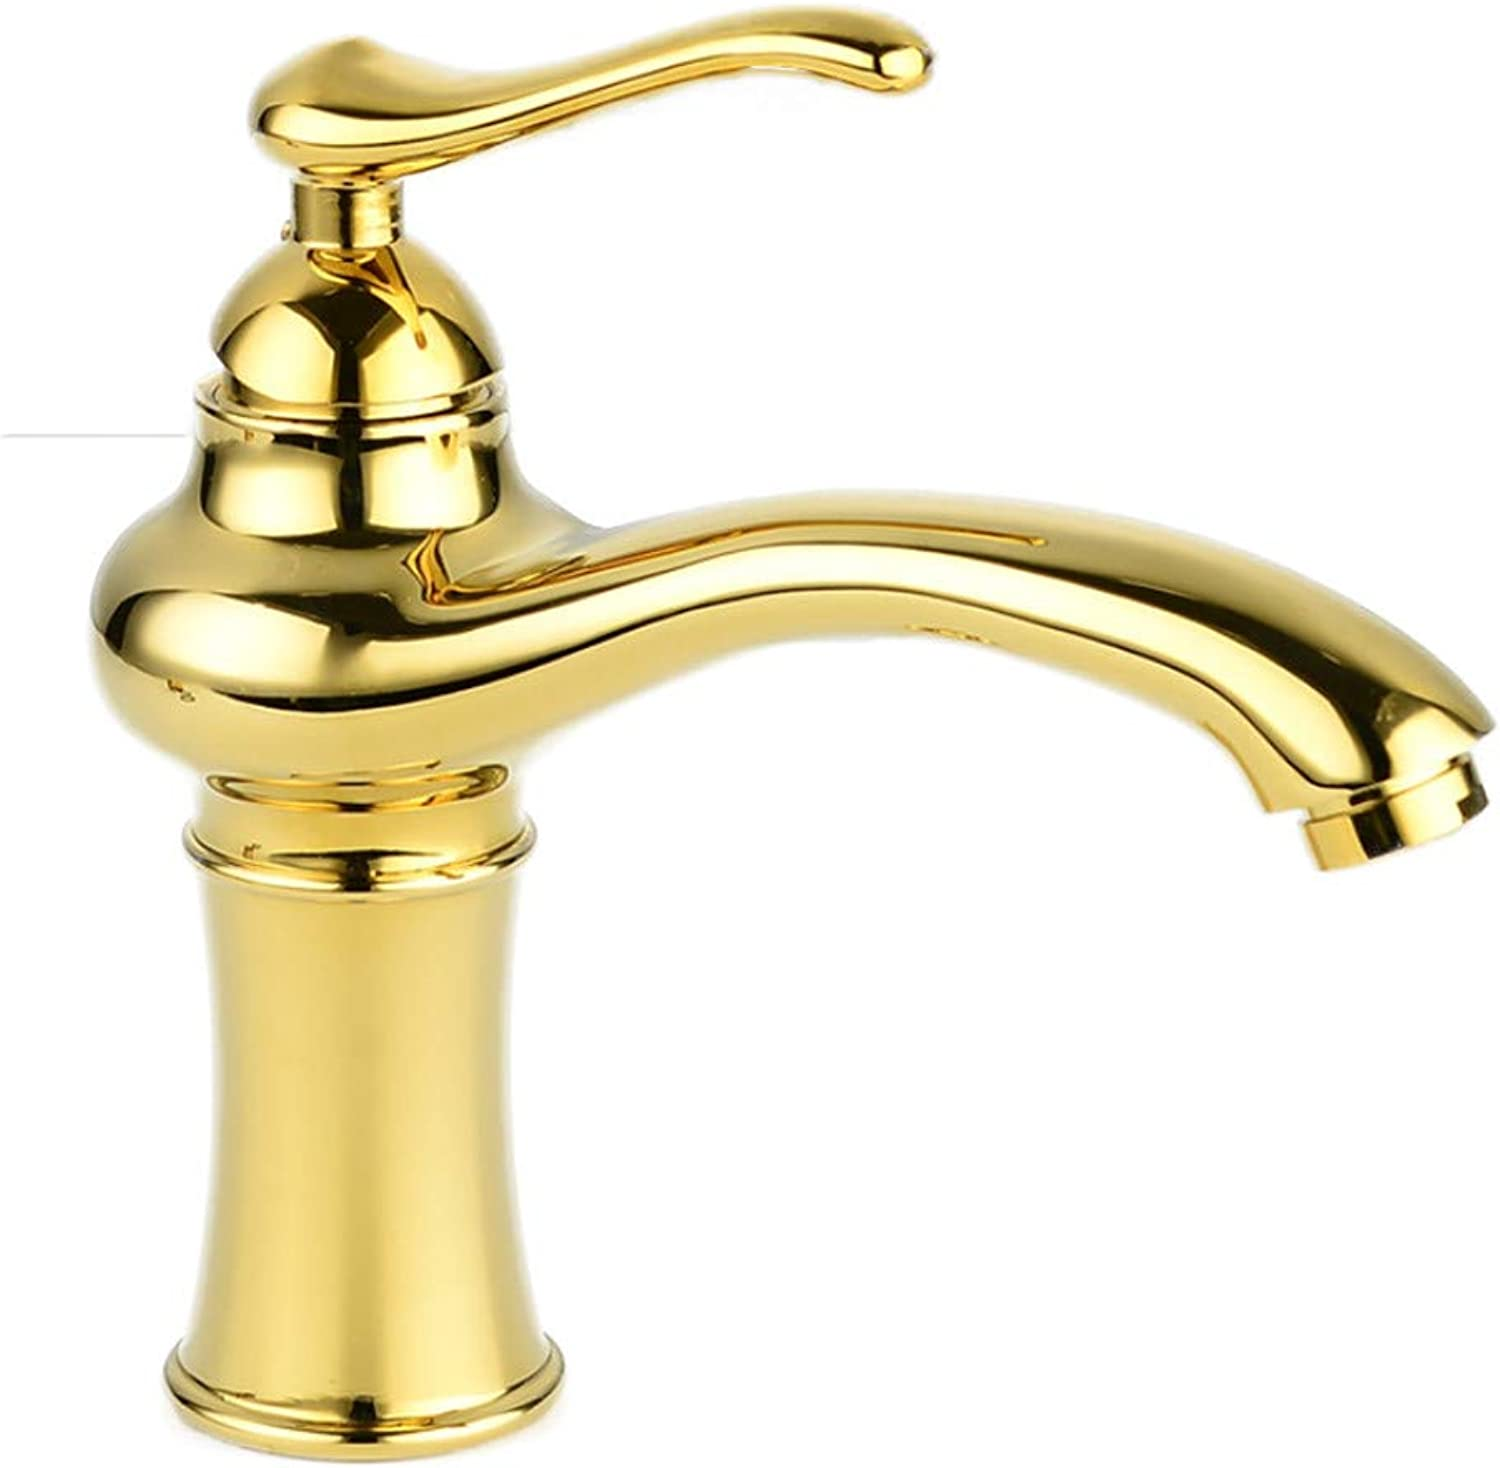 redOOY Taps Basin Faucet Antique Faucet Water Classical Basin Faucet gold Faucet Hot And Cold Water Faucet gold